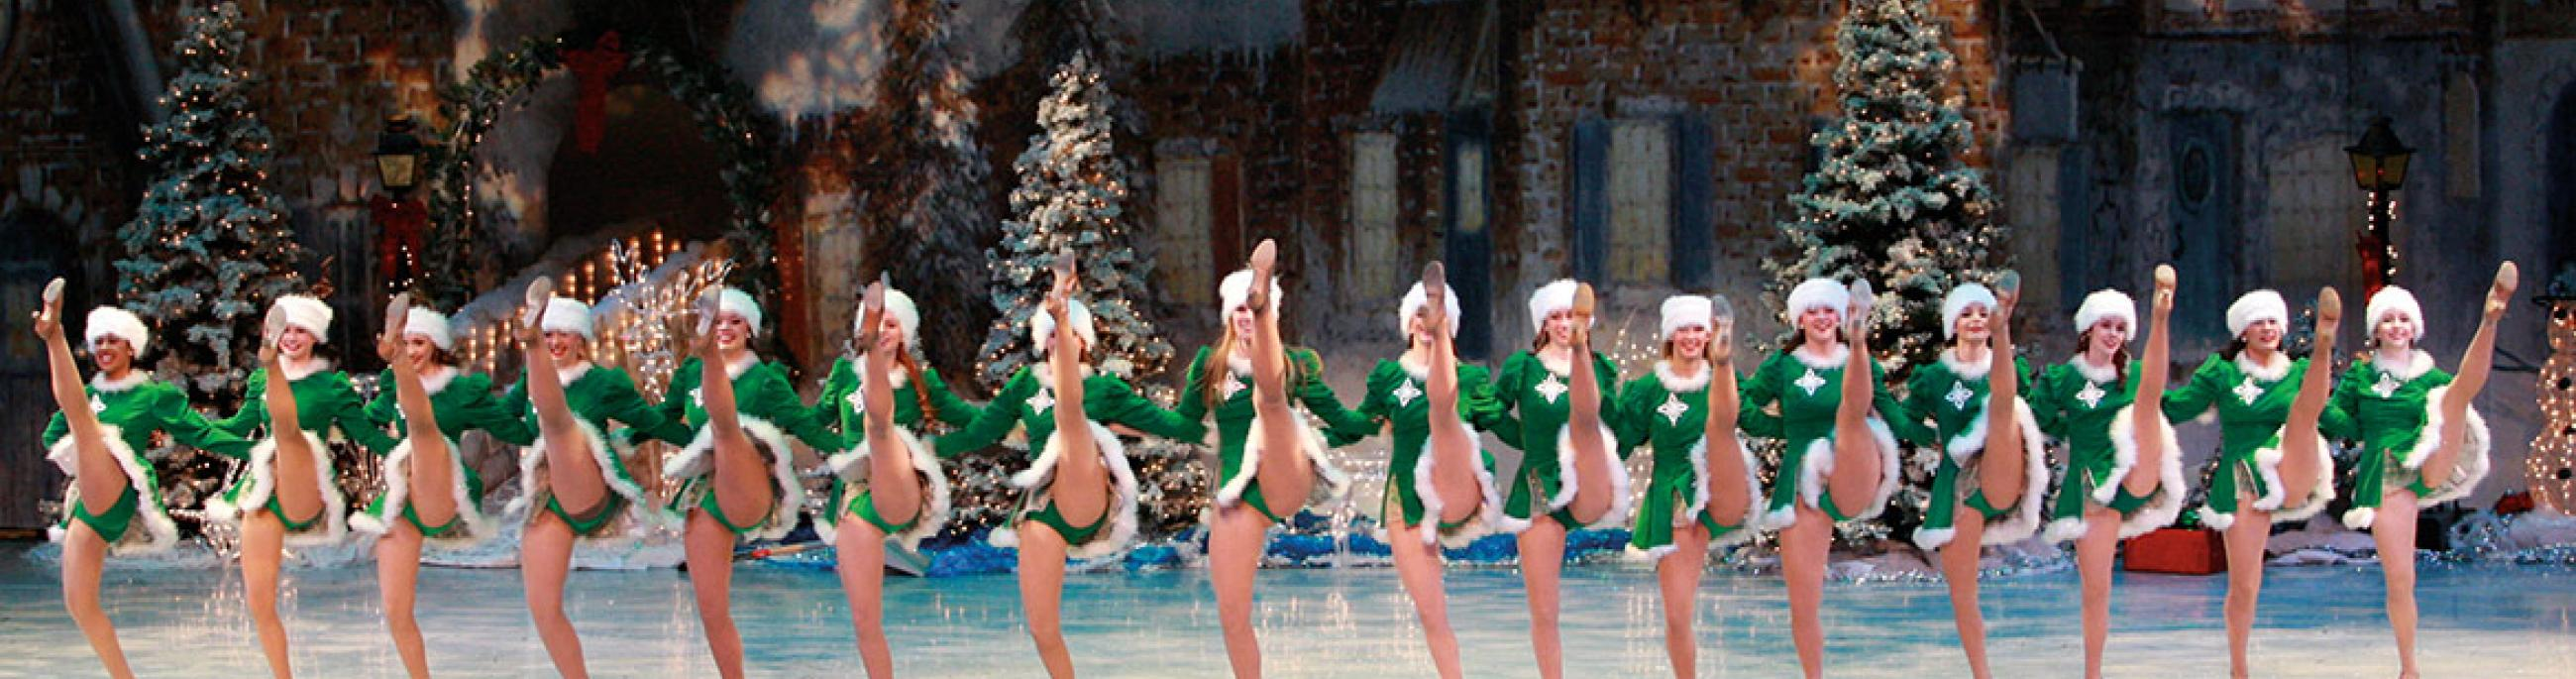 Tempe Dance Academy –  Annual Spirit of Christmas